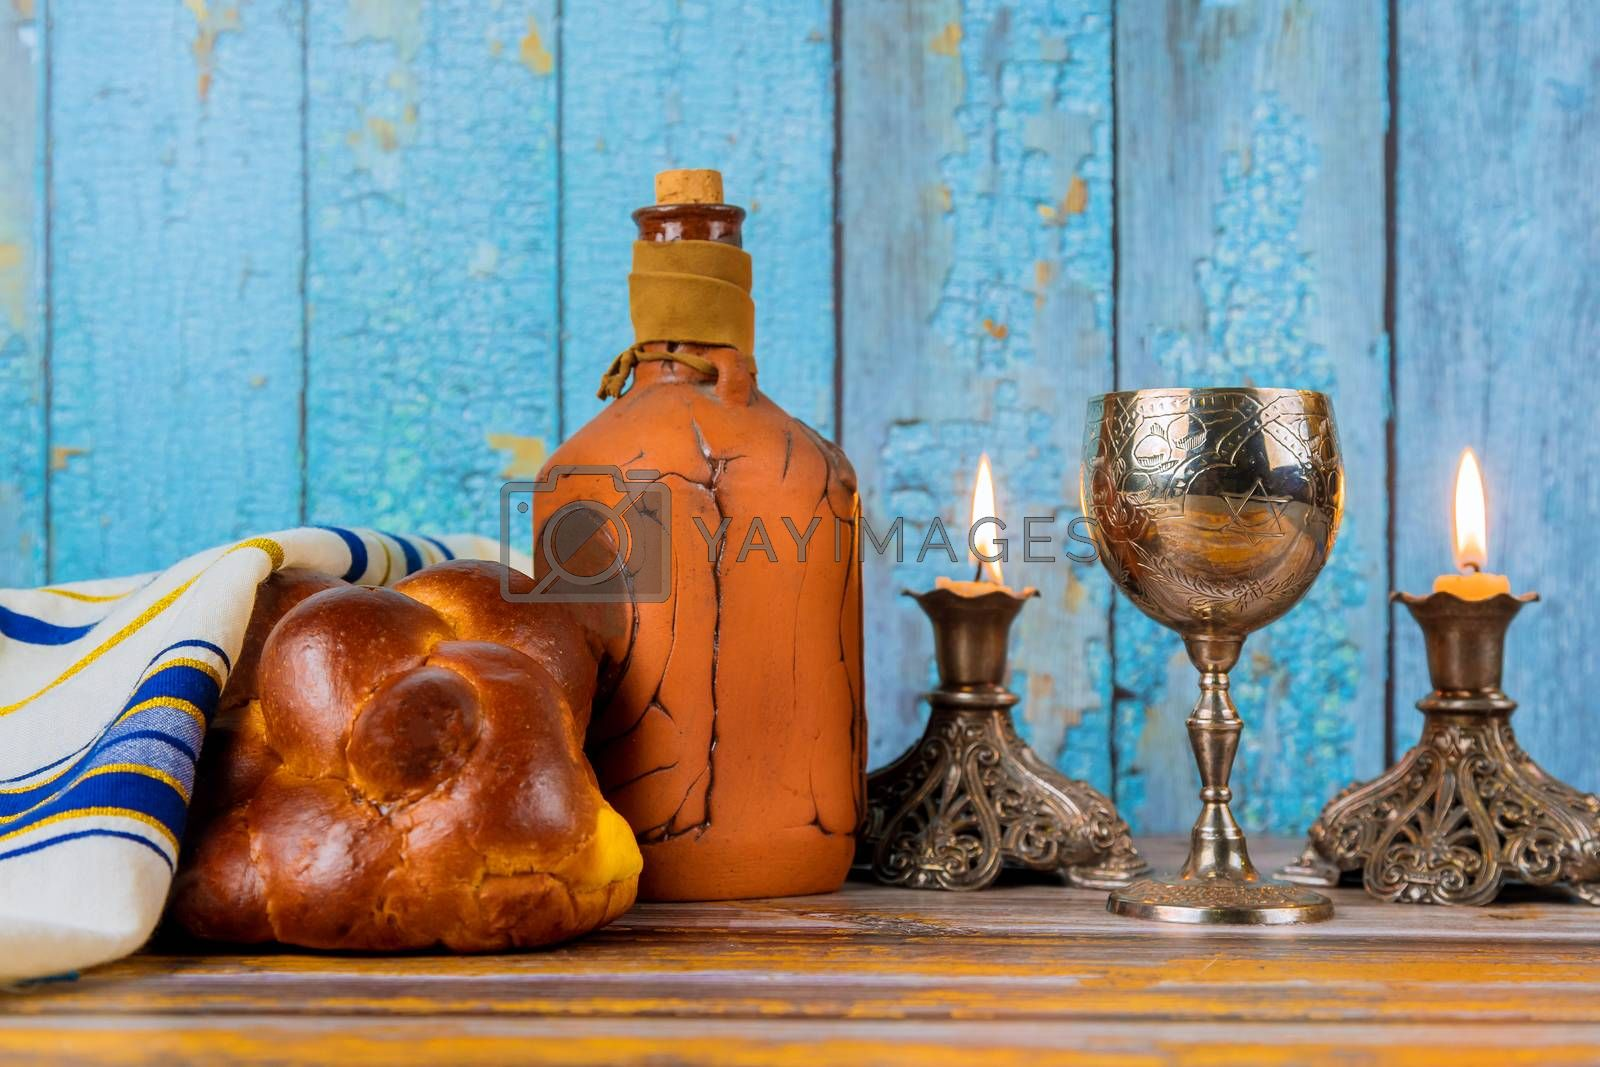 Shabbat with challah bread on a wooden table candles and cup of wine. by ungvar